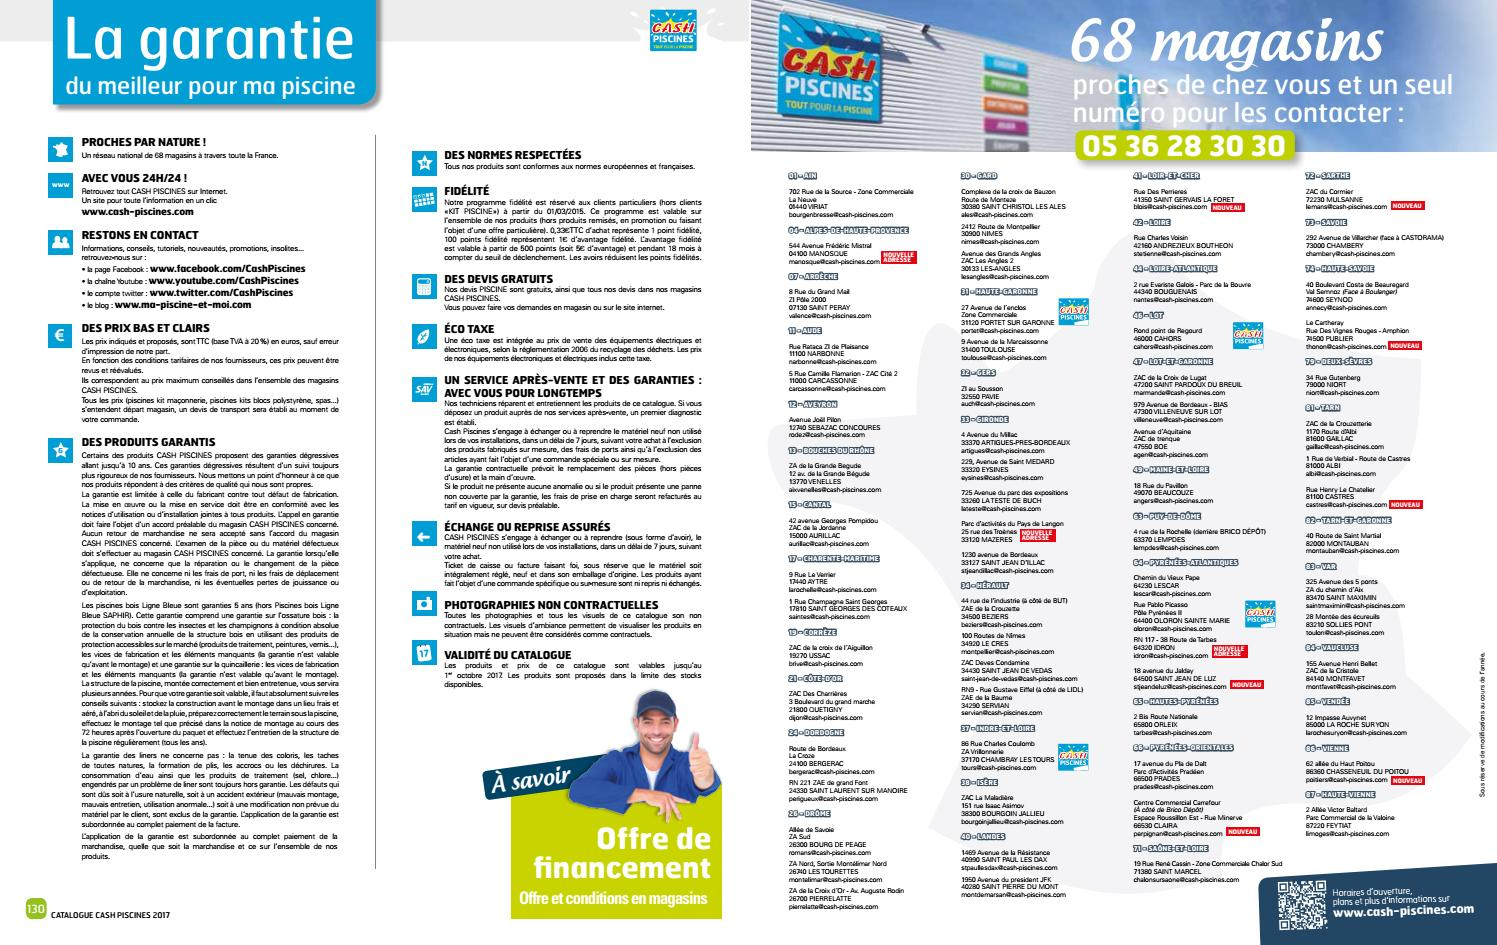 Catalogue Cash Piscine 2017 By Octave Octave - Issuu concernant Cash Piscine Bourgoin